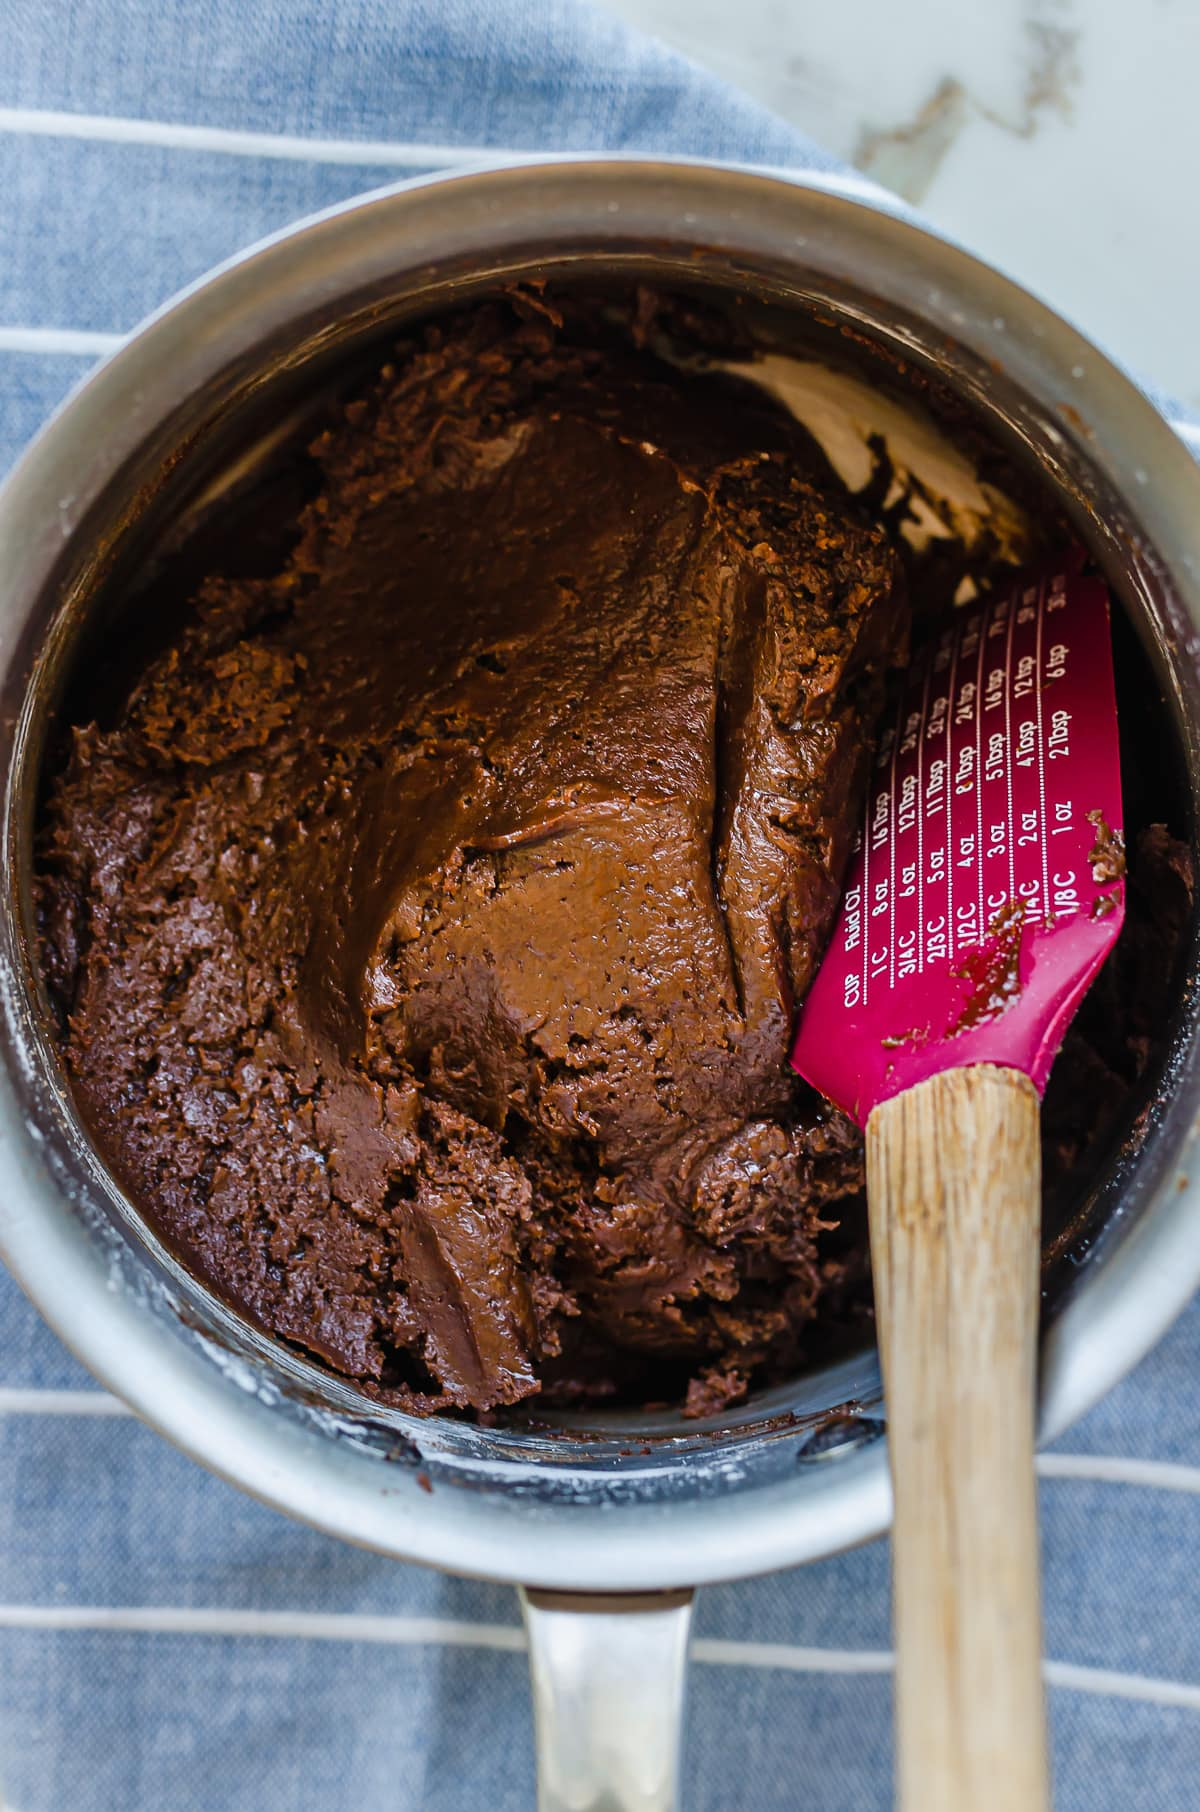 Chocolate tart dough being folded together in a saucepan.